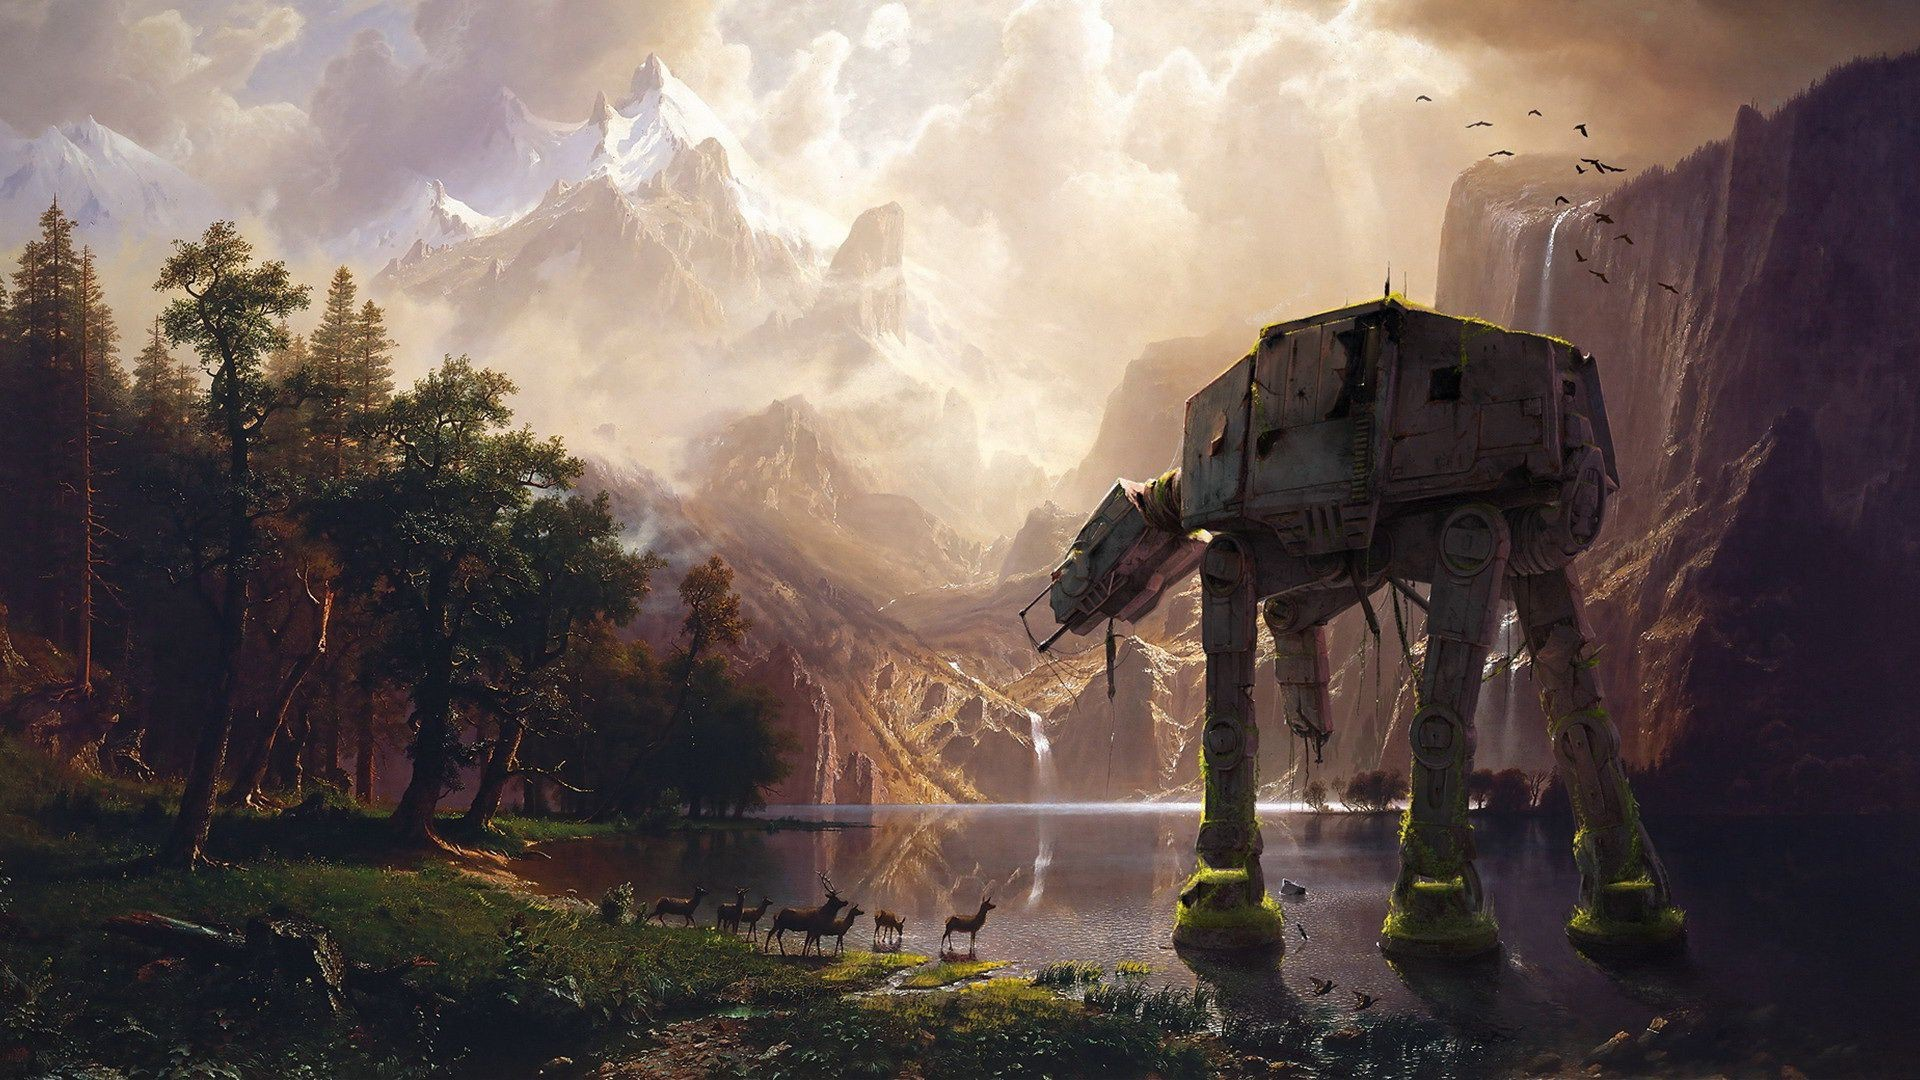 Star Wars Desktop Wallpaper ·① Download Free HD Desktop